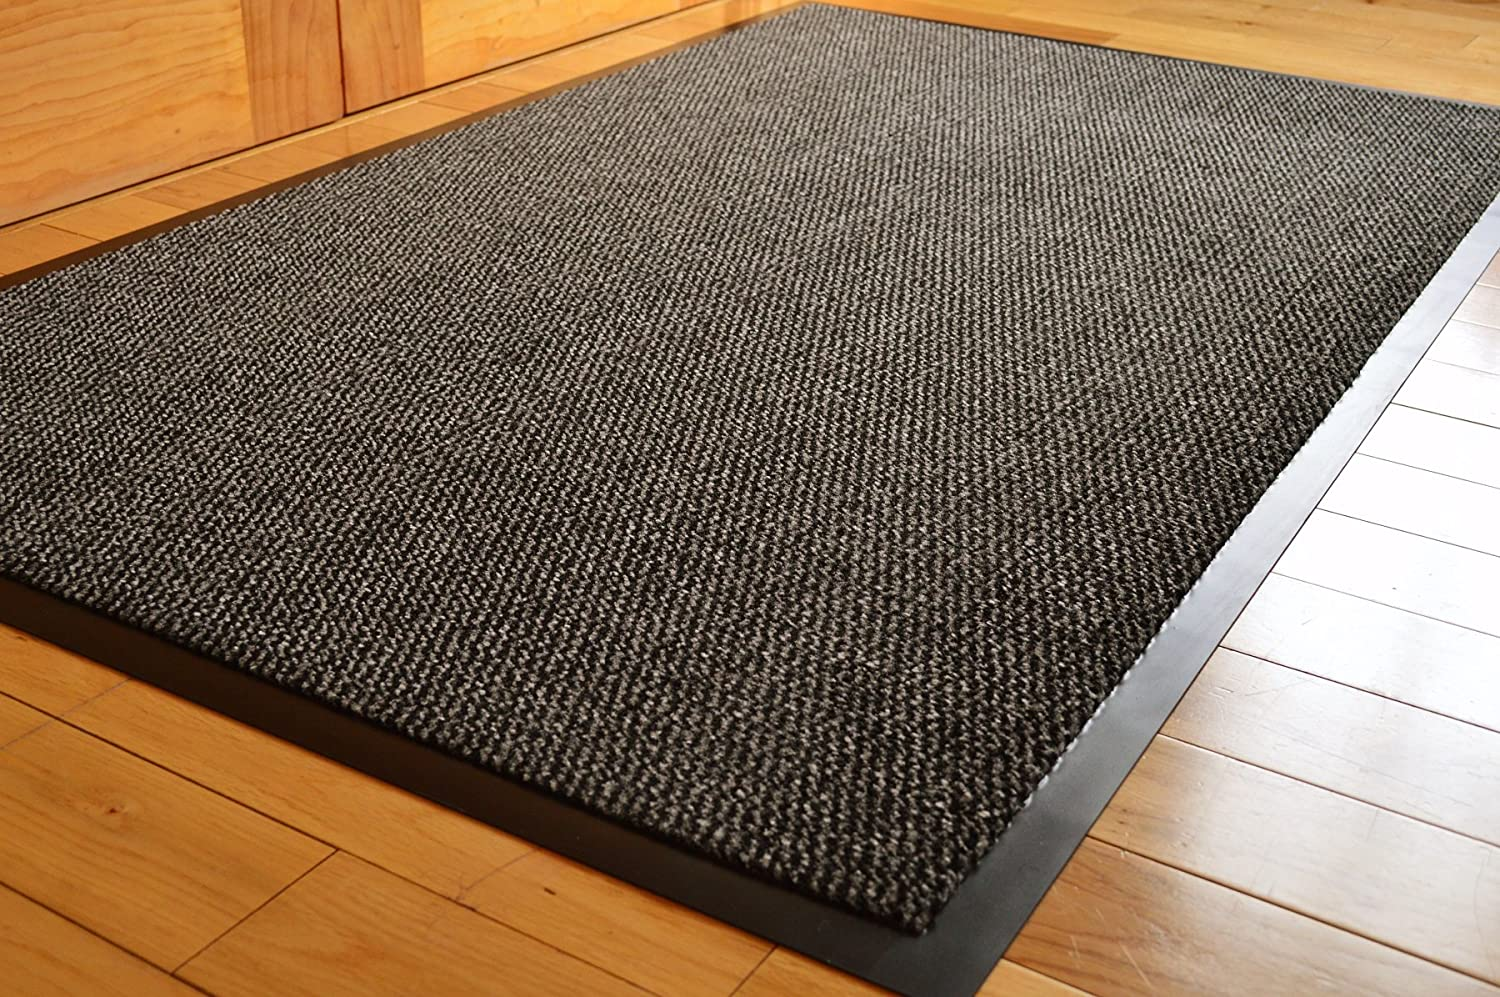 TrendMakers Barrier Mats Heavy Quality Non Slip Hard Wearing Barrier Mat. PVC Edged Heavy Duty Kitchen Mat Rug Available in 8 sizes (90cm x 150cm)-GREY ... & TrendMakers Barrier Mats Heavy Quality Non Slip Hard Wearing Barrier ...